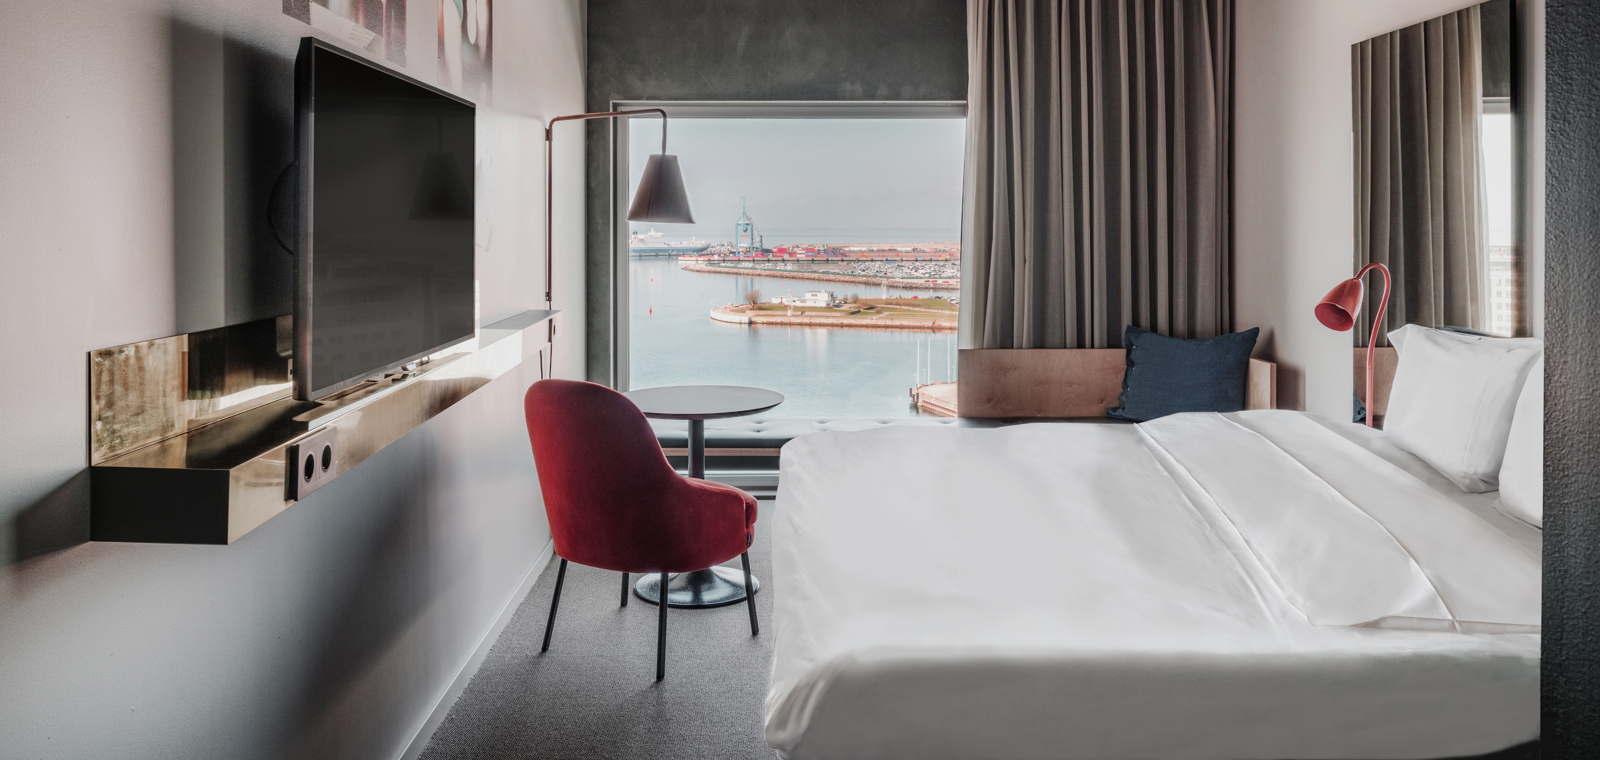 MMXJD-King-Bed-Ocean-View-Room-Bed